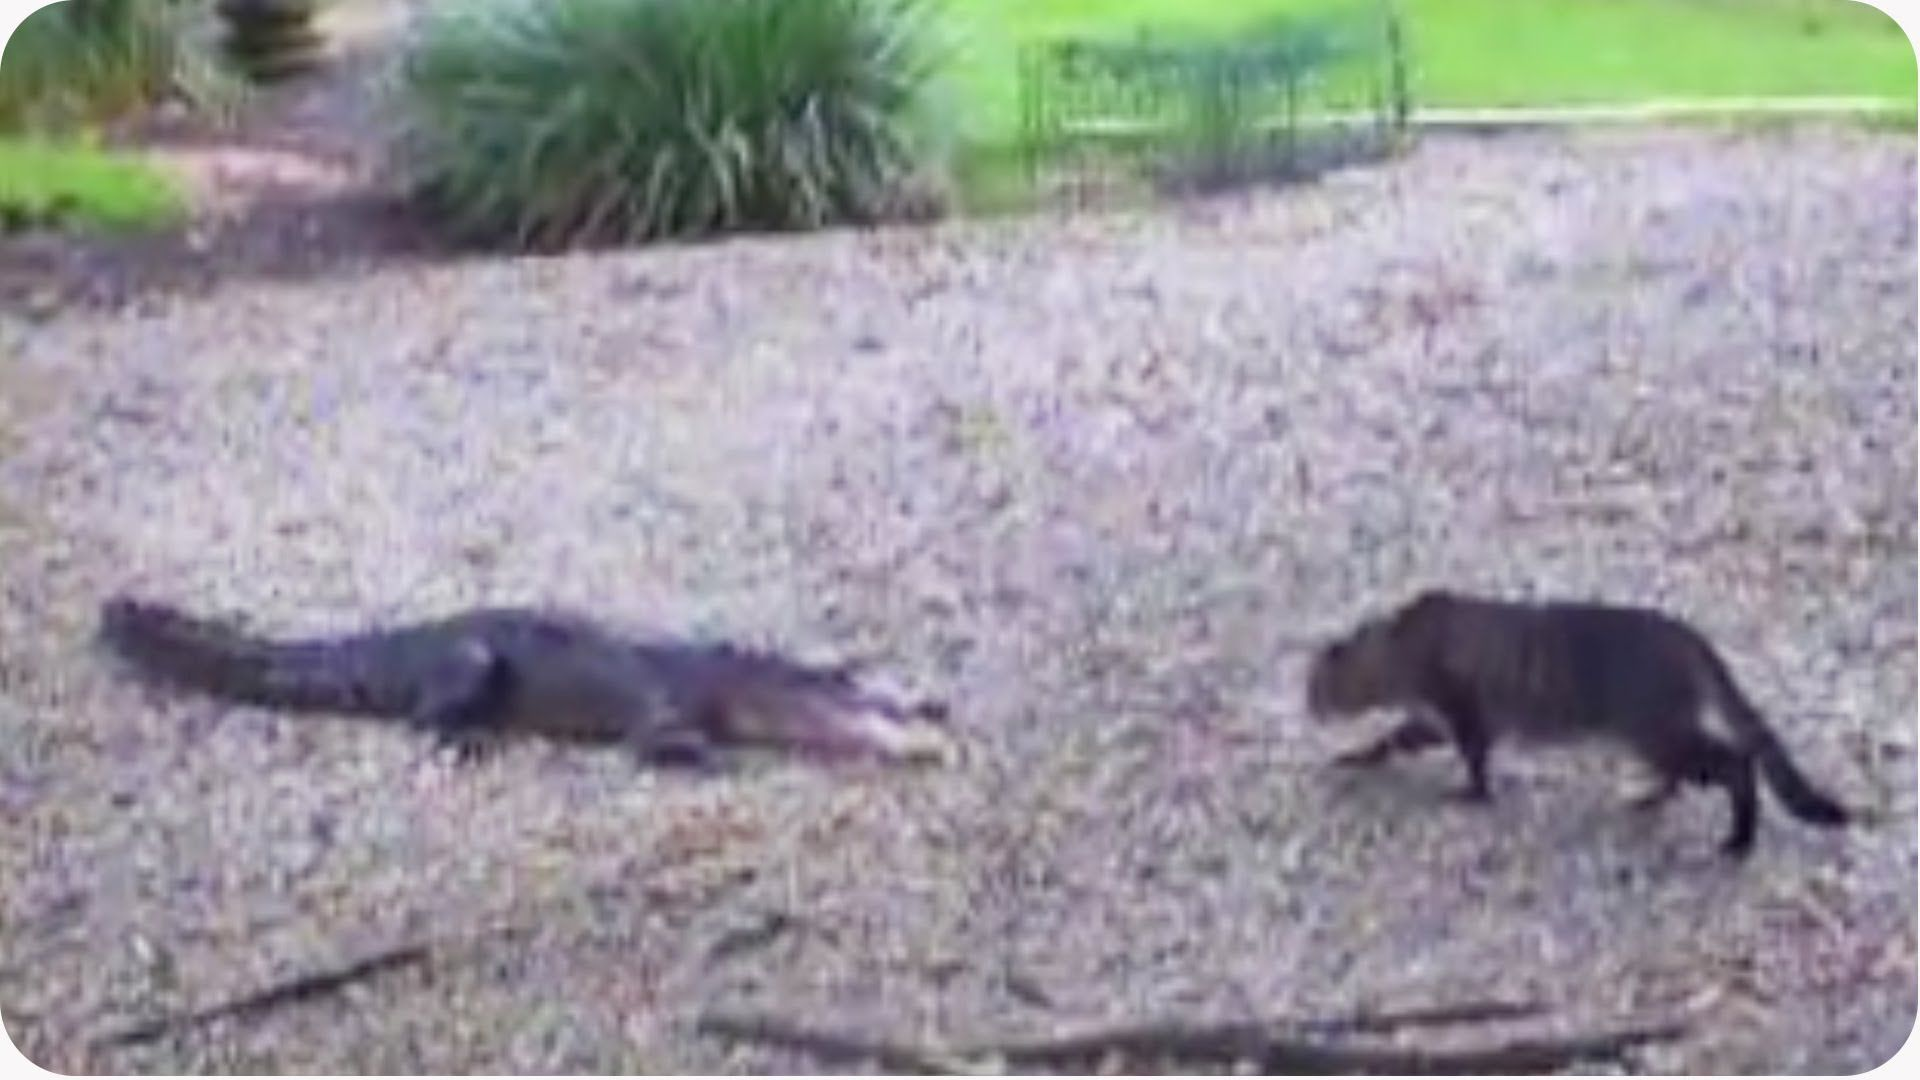 Now Who's The Scaredy Cat? Alligator vs. Housecat